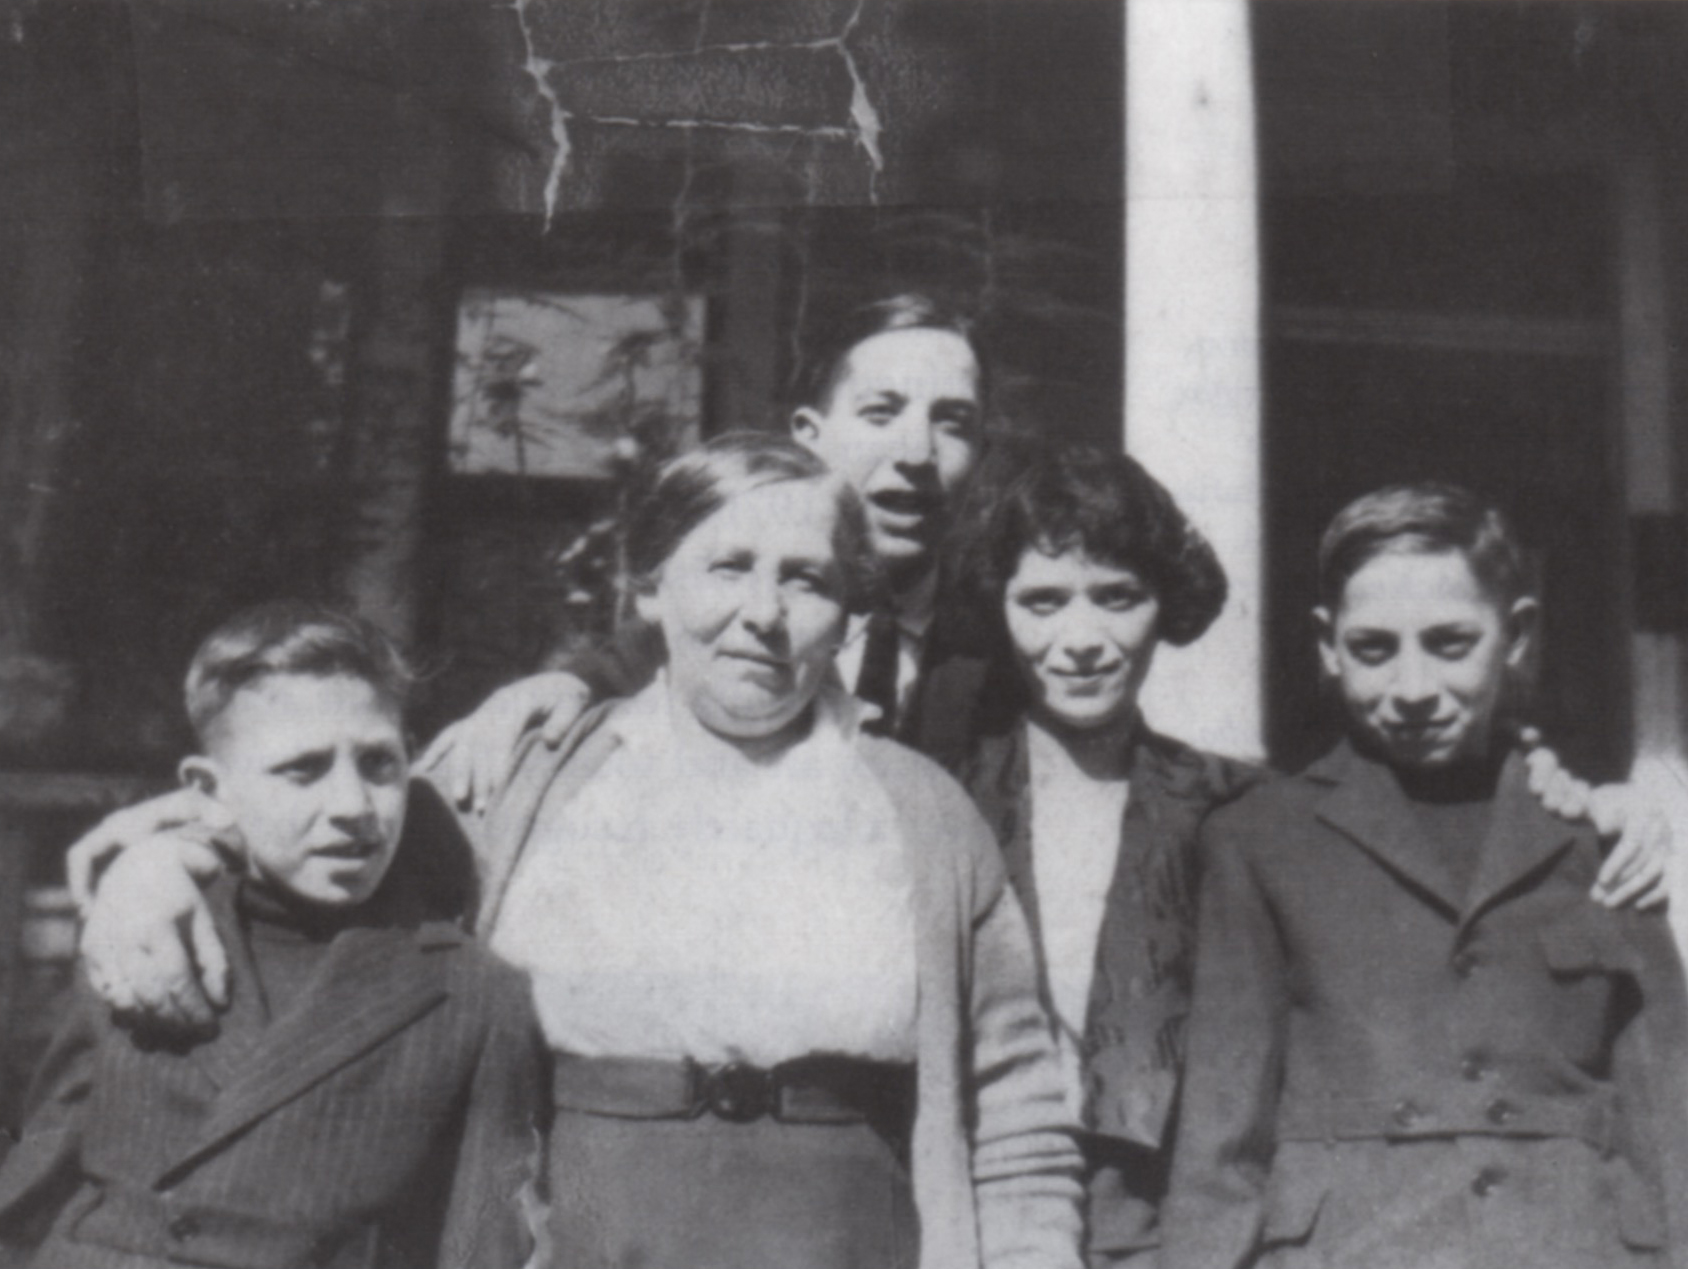 (fig. 5) Phillip Goldstein, at left, with his mother Rachel, brother Nat, sister Rose, and brother Irving in Los Angeles, early 1920s. Photo © Estate of Philip Guston, David McKee Gallery, New York